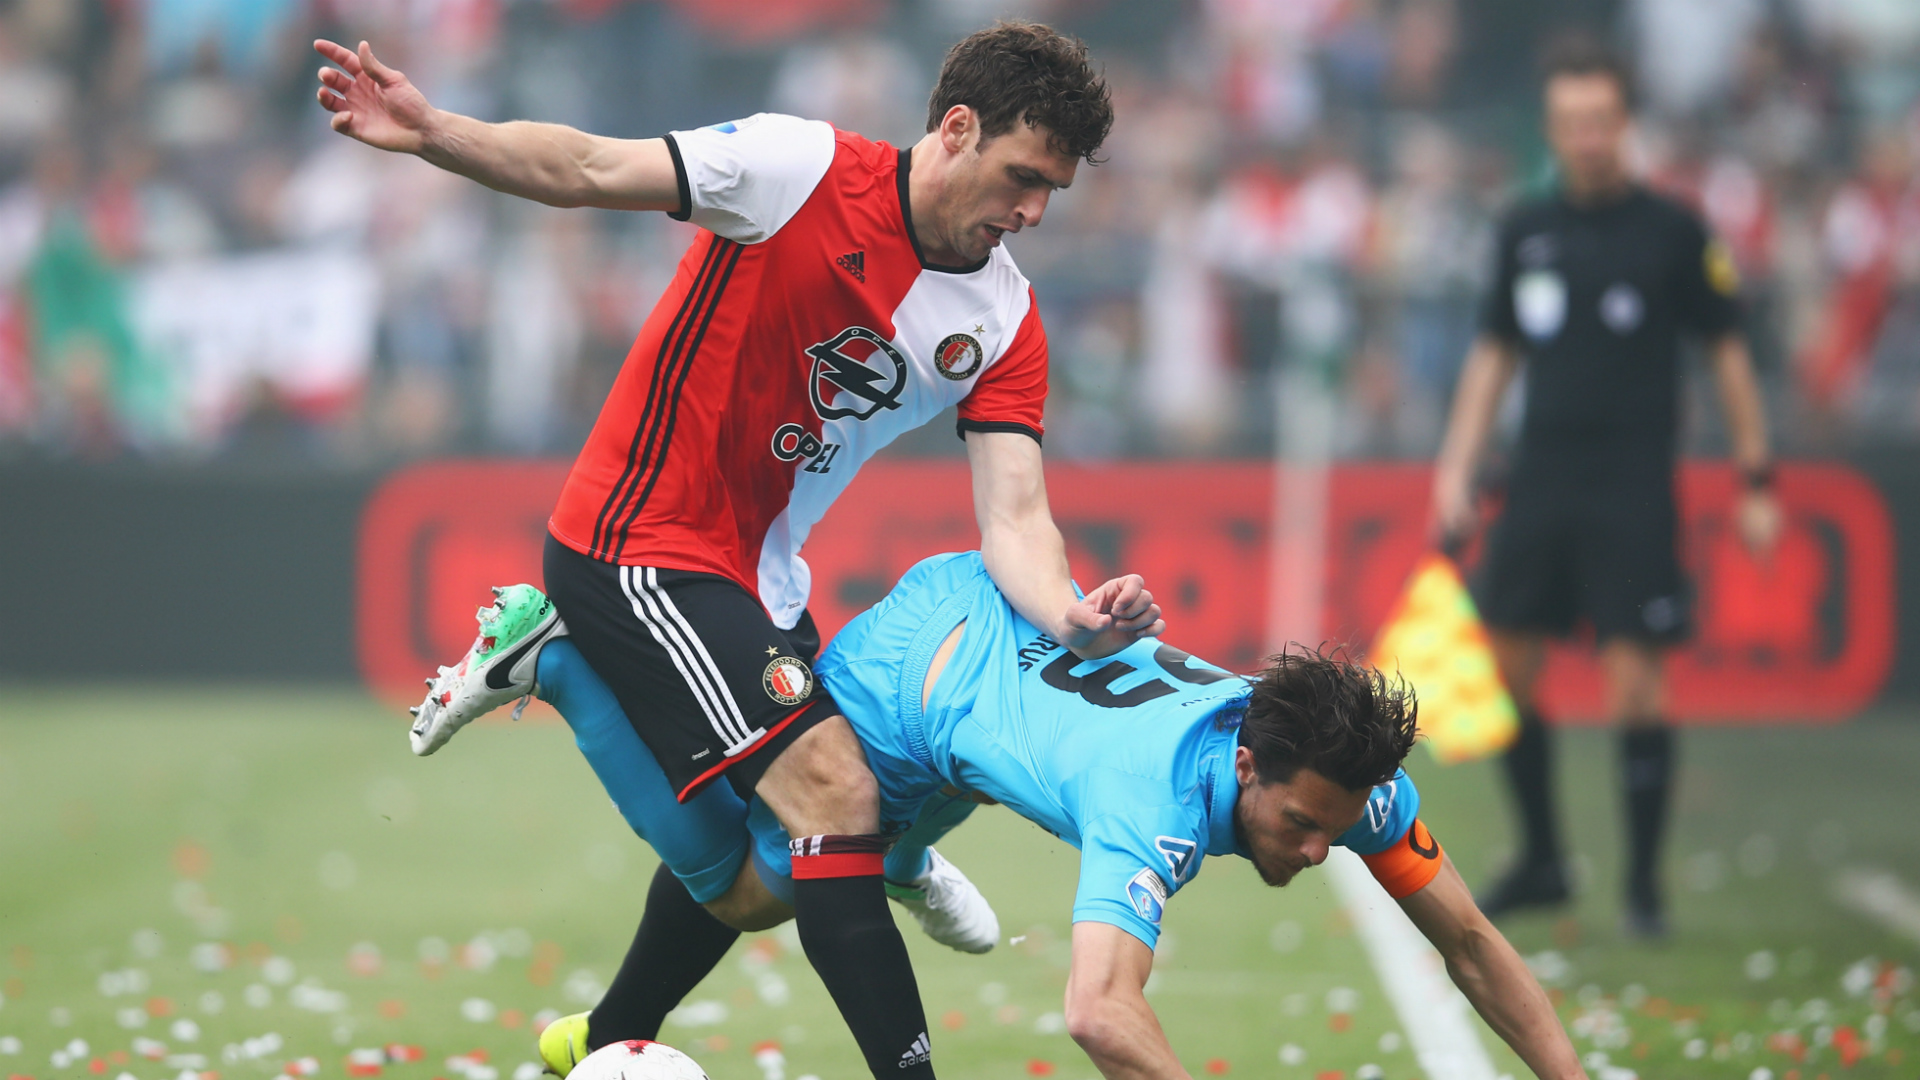 Kuyt leads Feyenoord to elusive Dutch league title